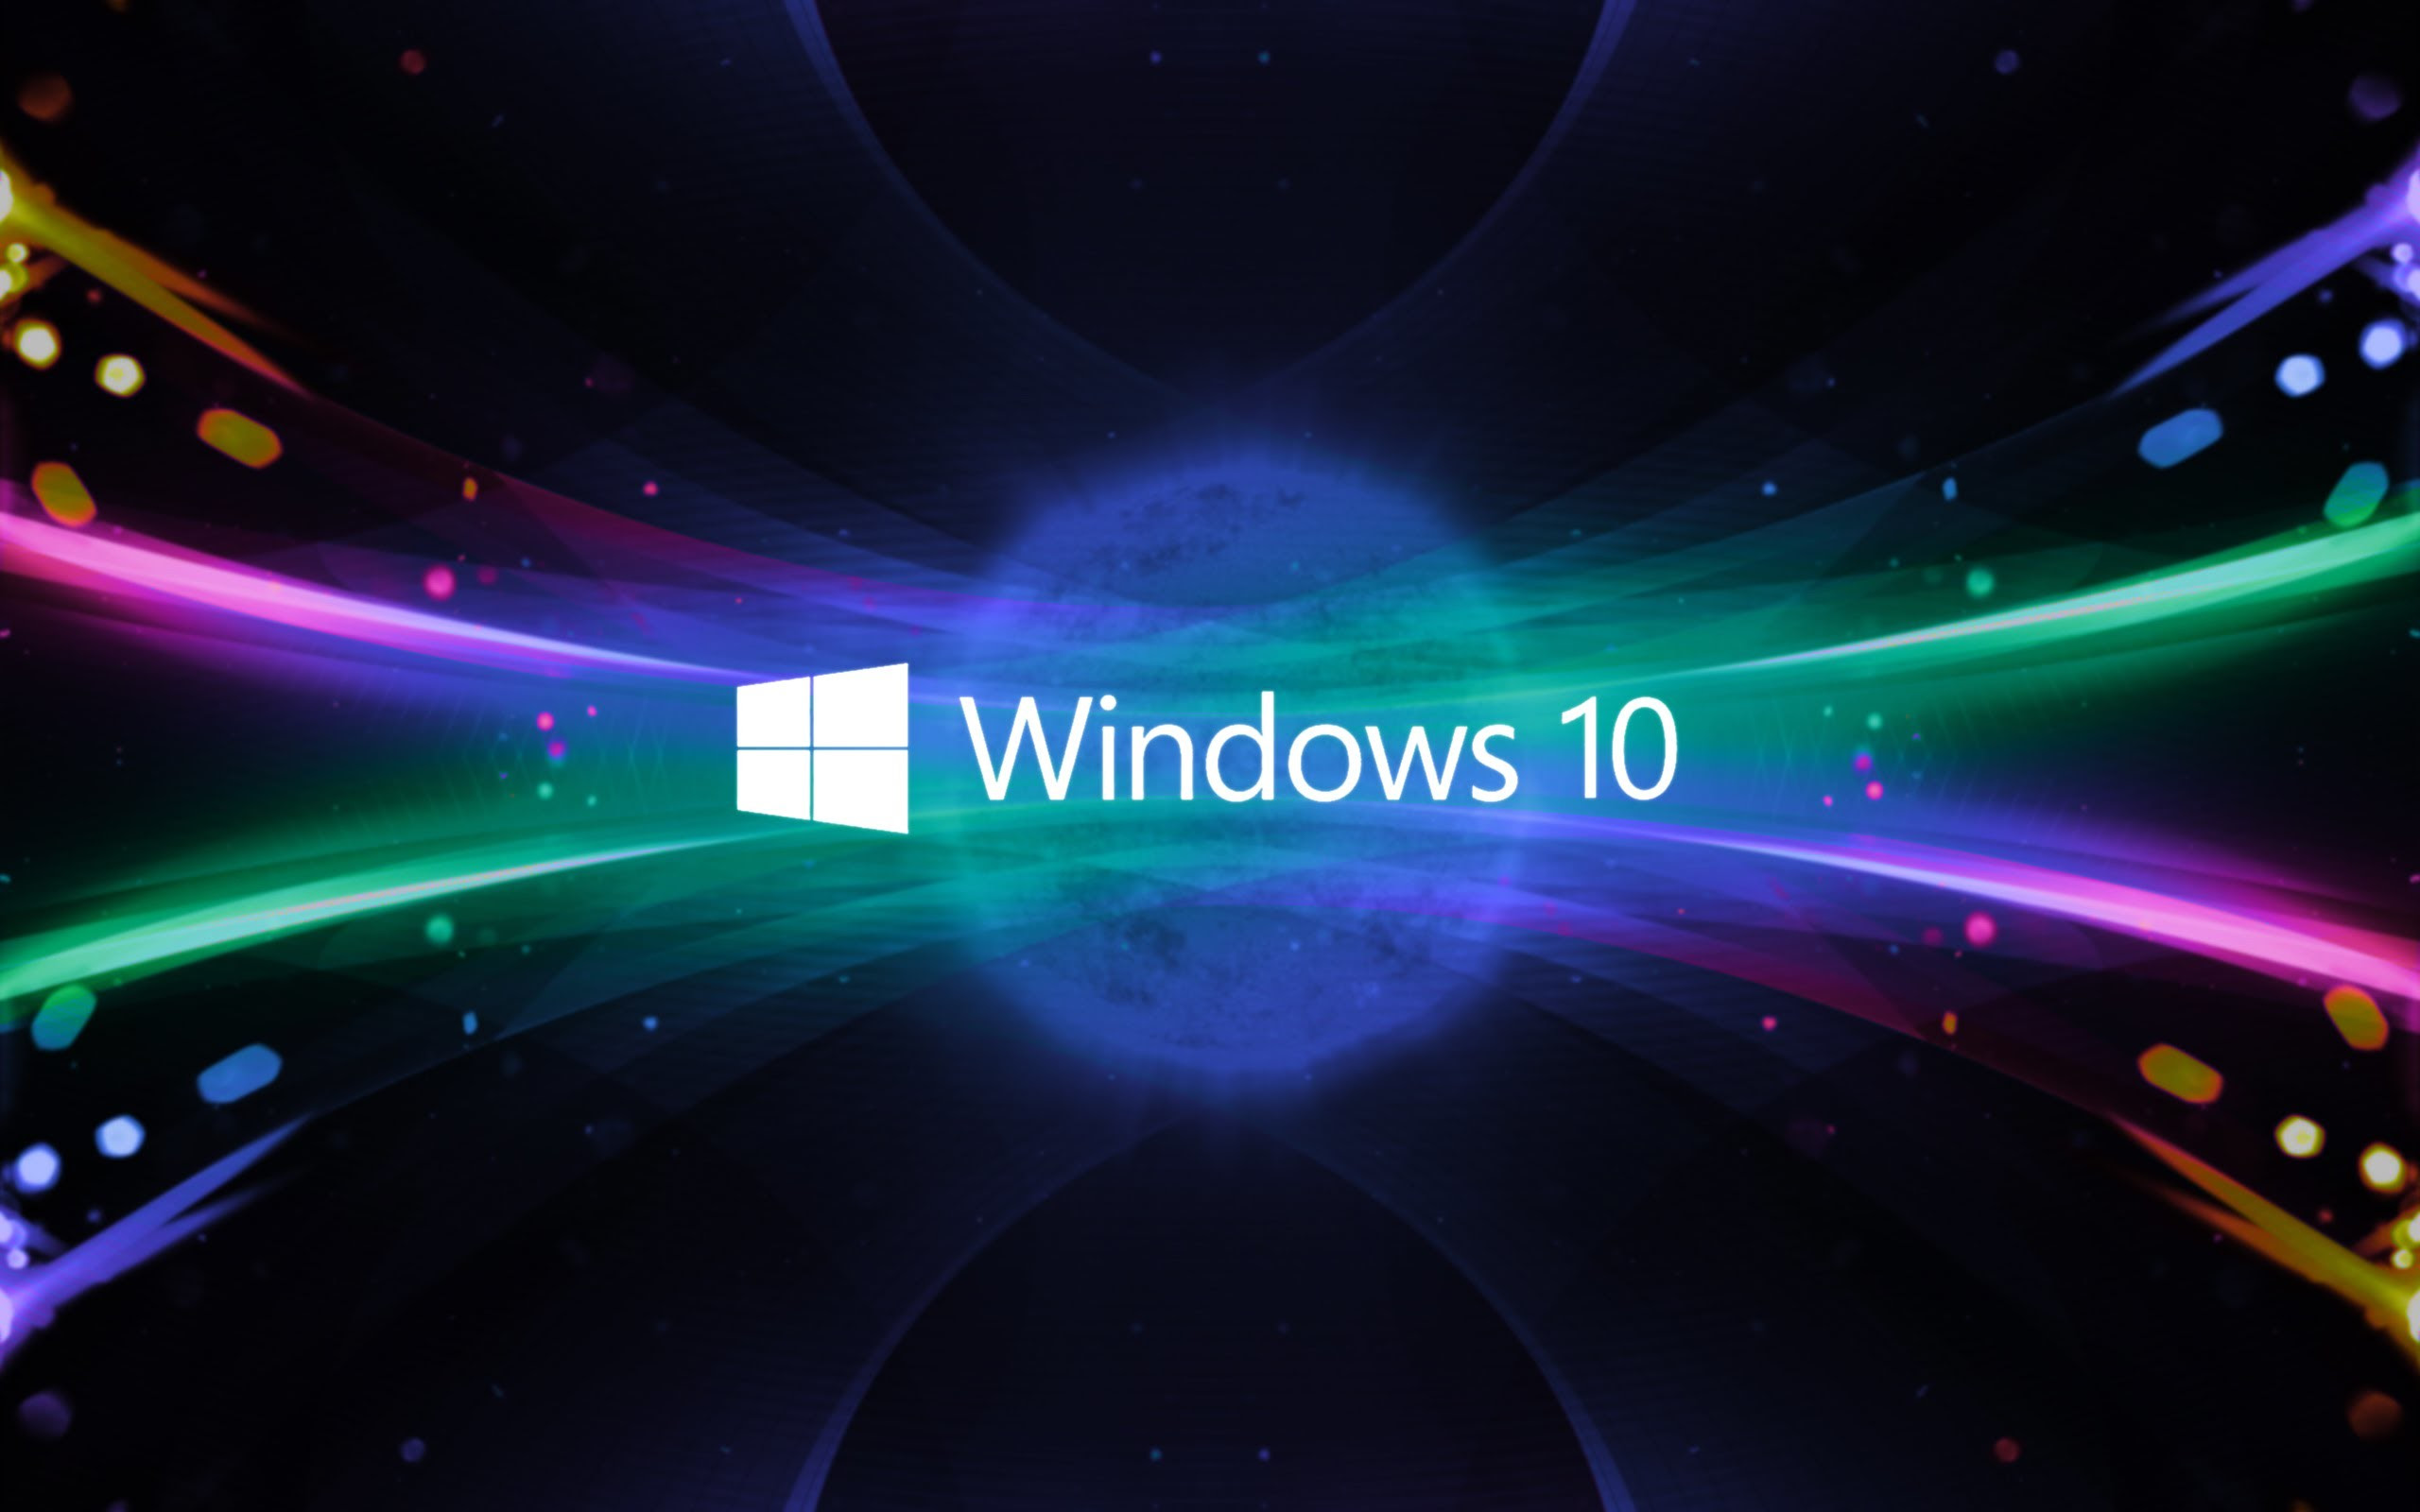 3D Moving Wallpaper for Windows 10 (51+ images)